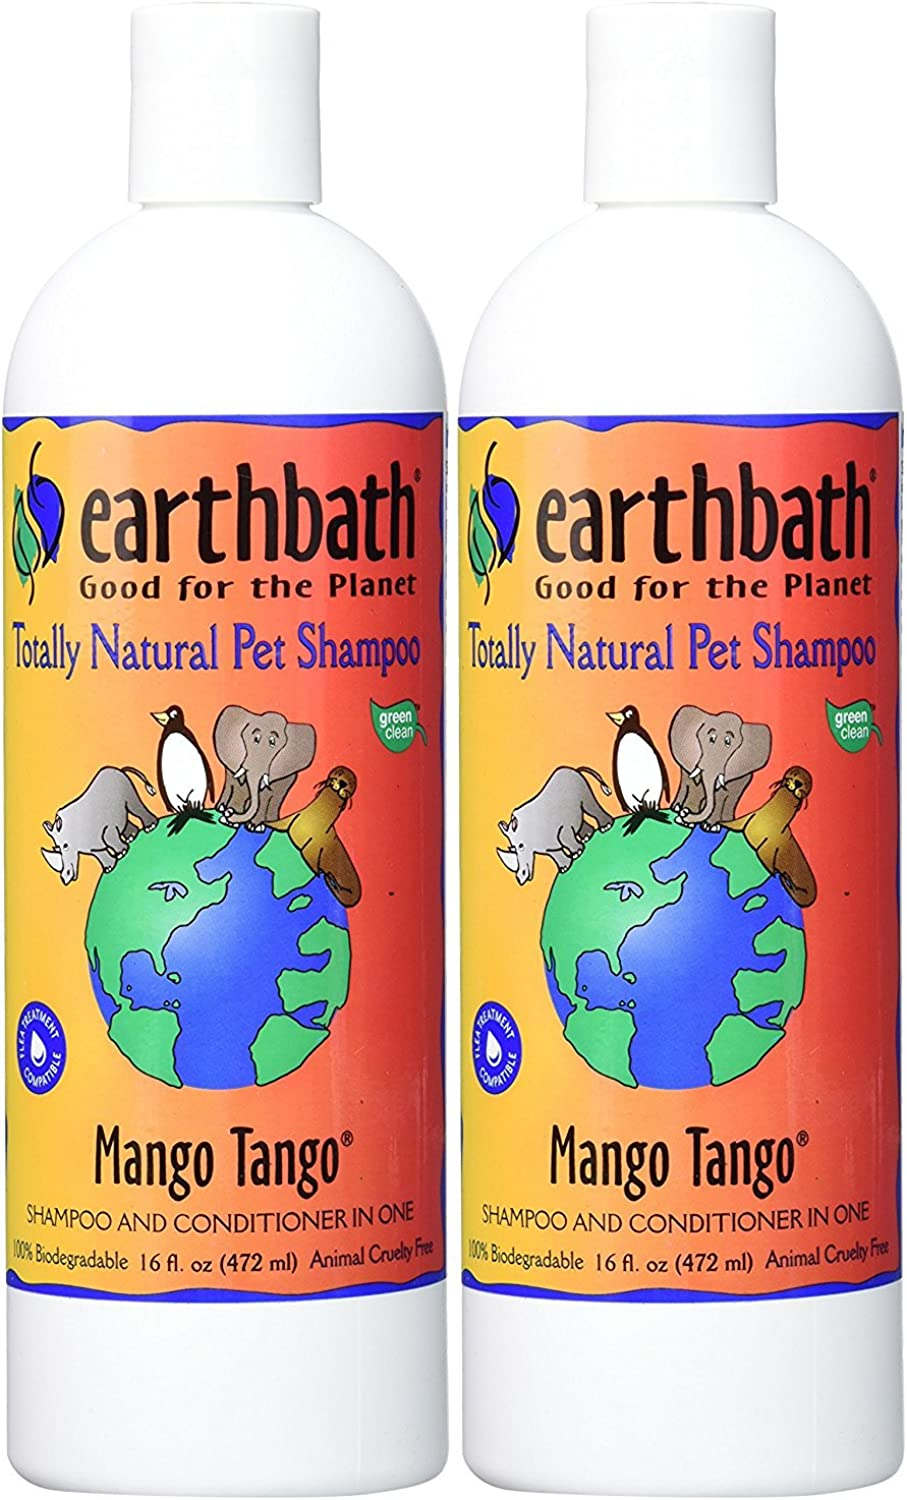 Earthbath 840002 All Natural Shampoo (2 Pack), 16 oz